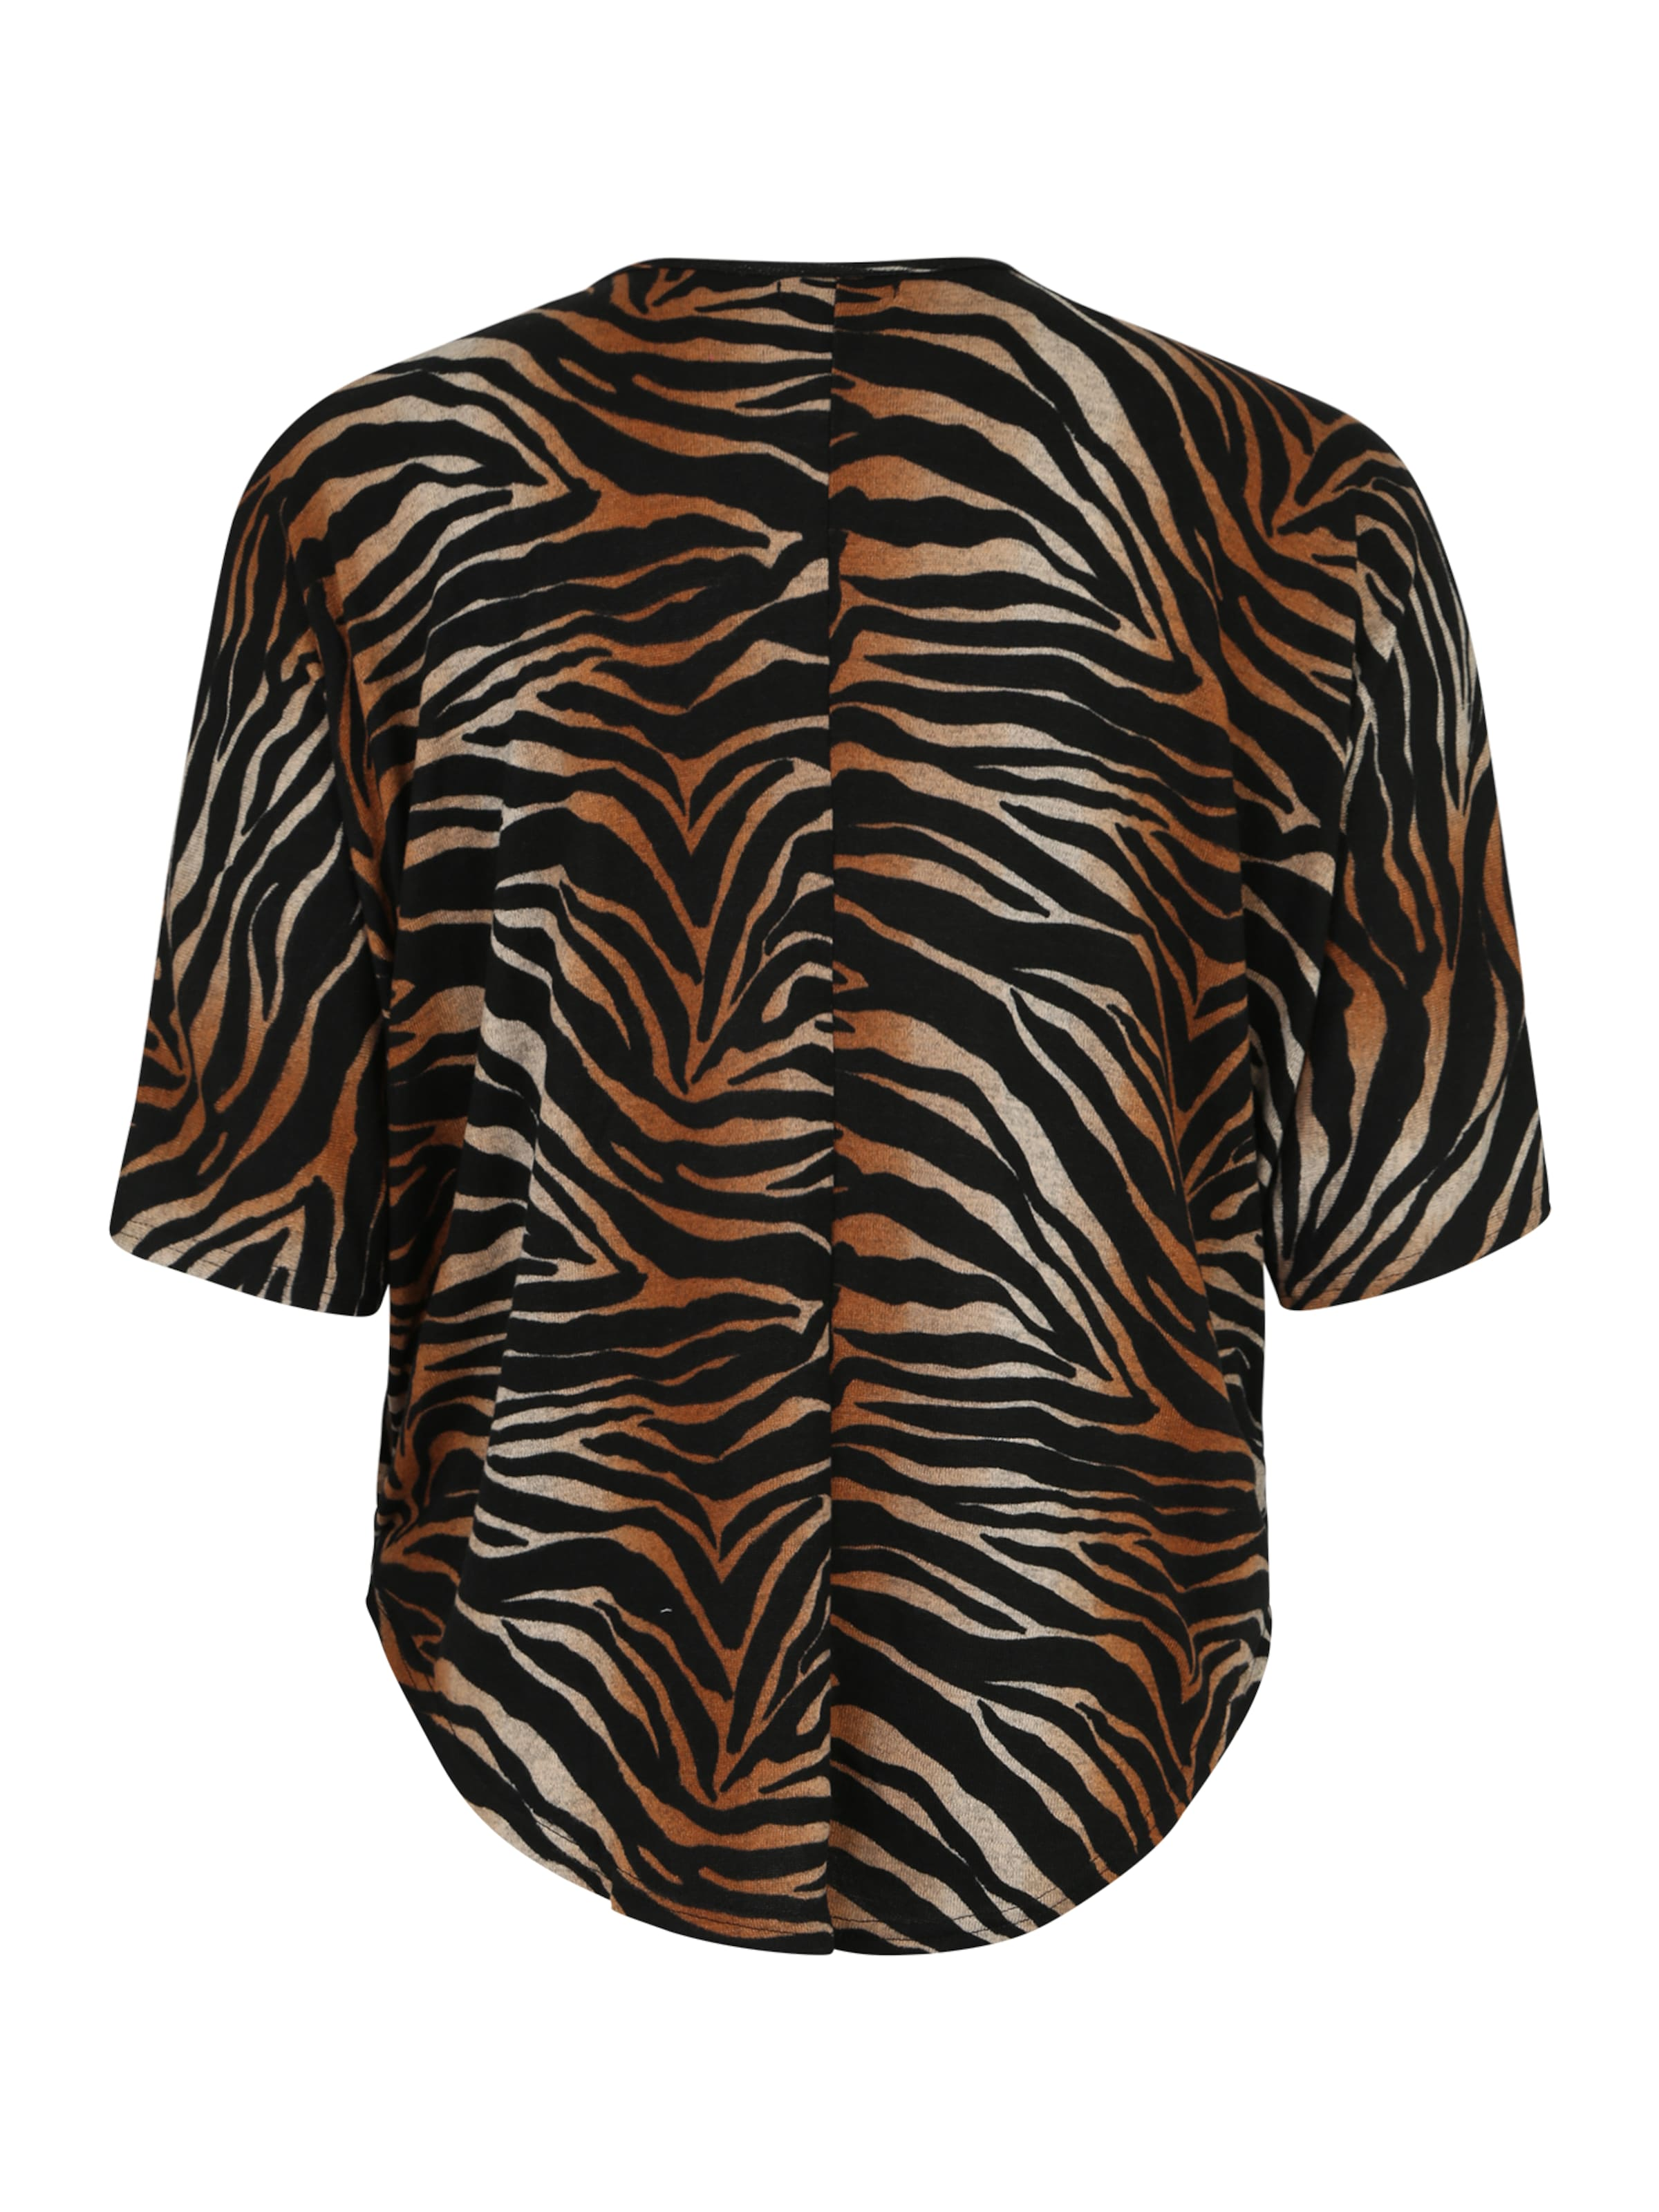 'x En Curves Tunique New Look Ombre C Tiger' Marron amp;s nwXOkZN8P0